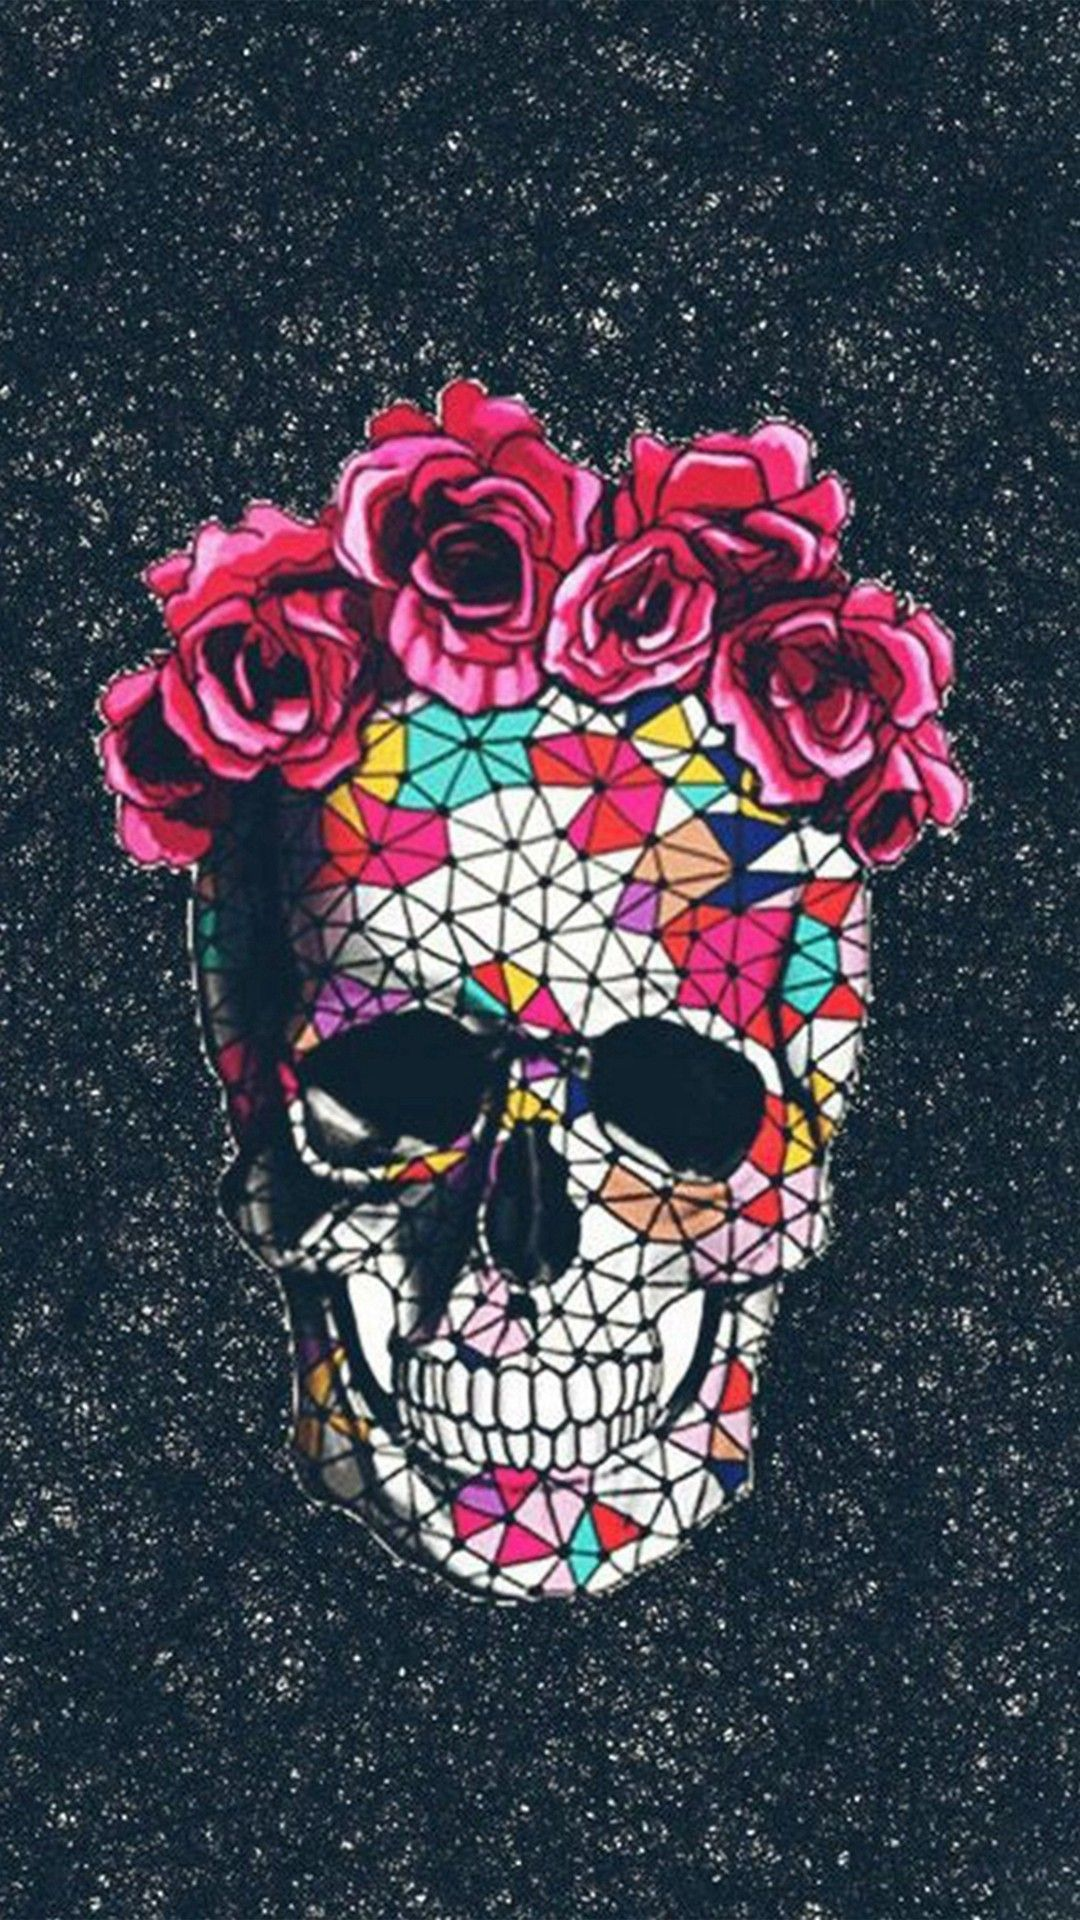 Floral Skull Iphone 6 Wallpapers Top Free Floral Skull Iphone 6